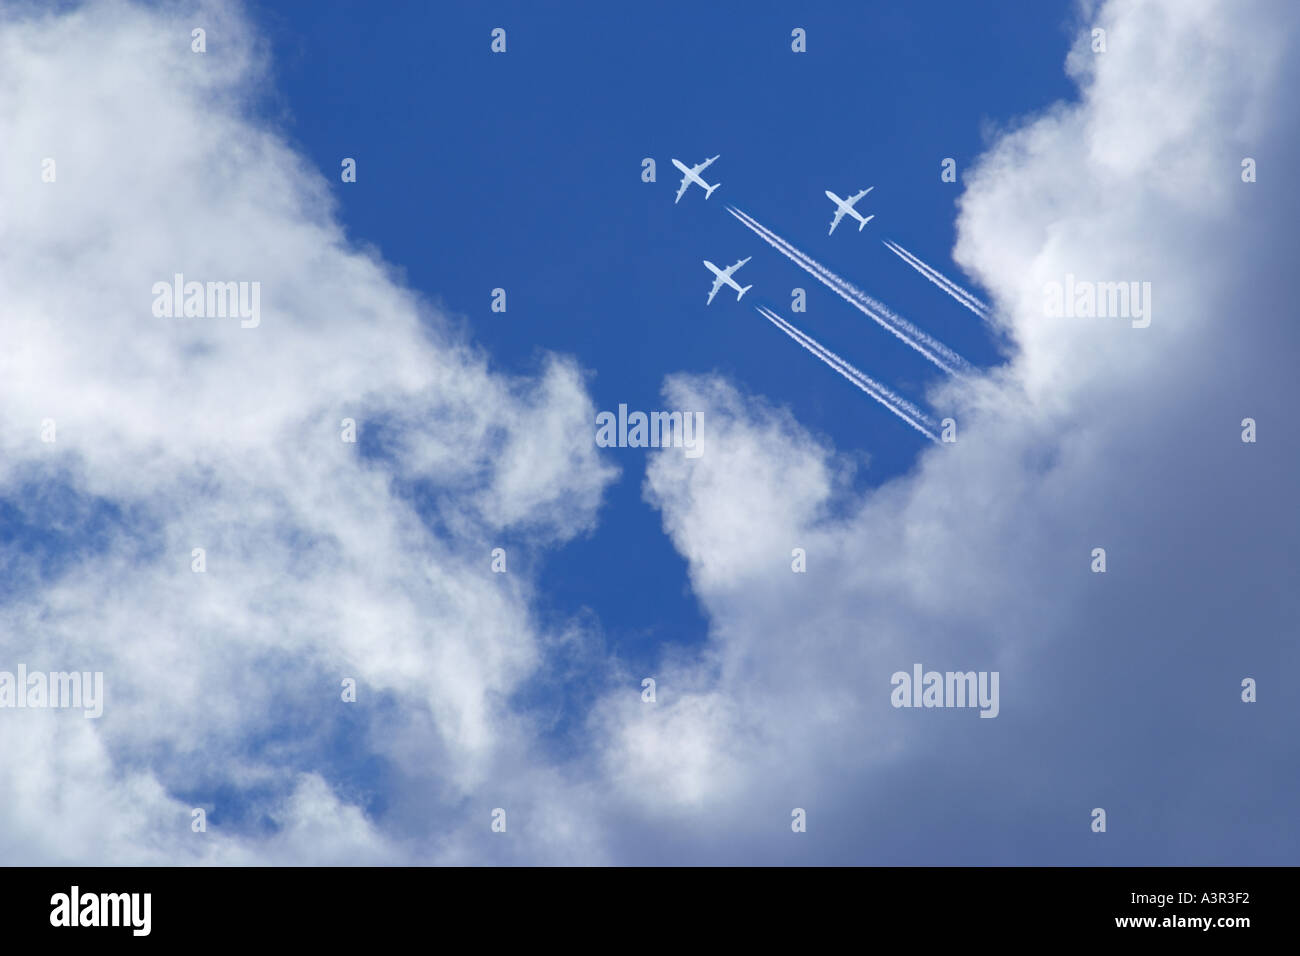 three white passenger airplanes with vapor trails in blue sky